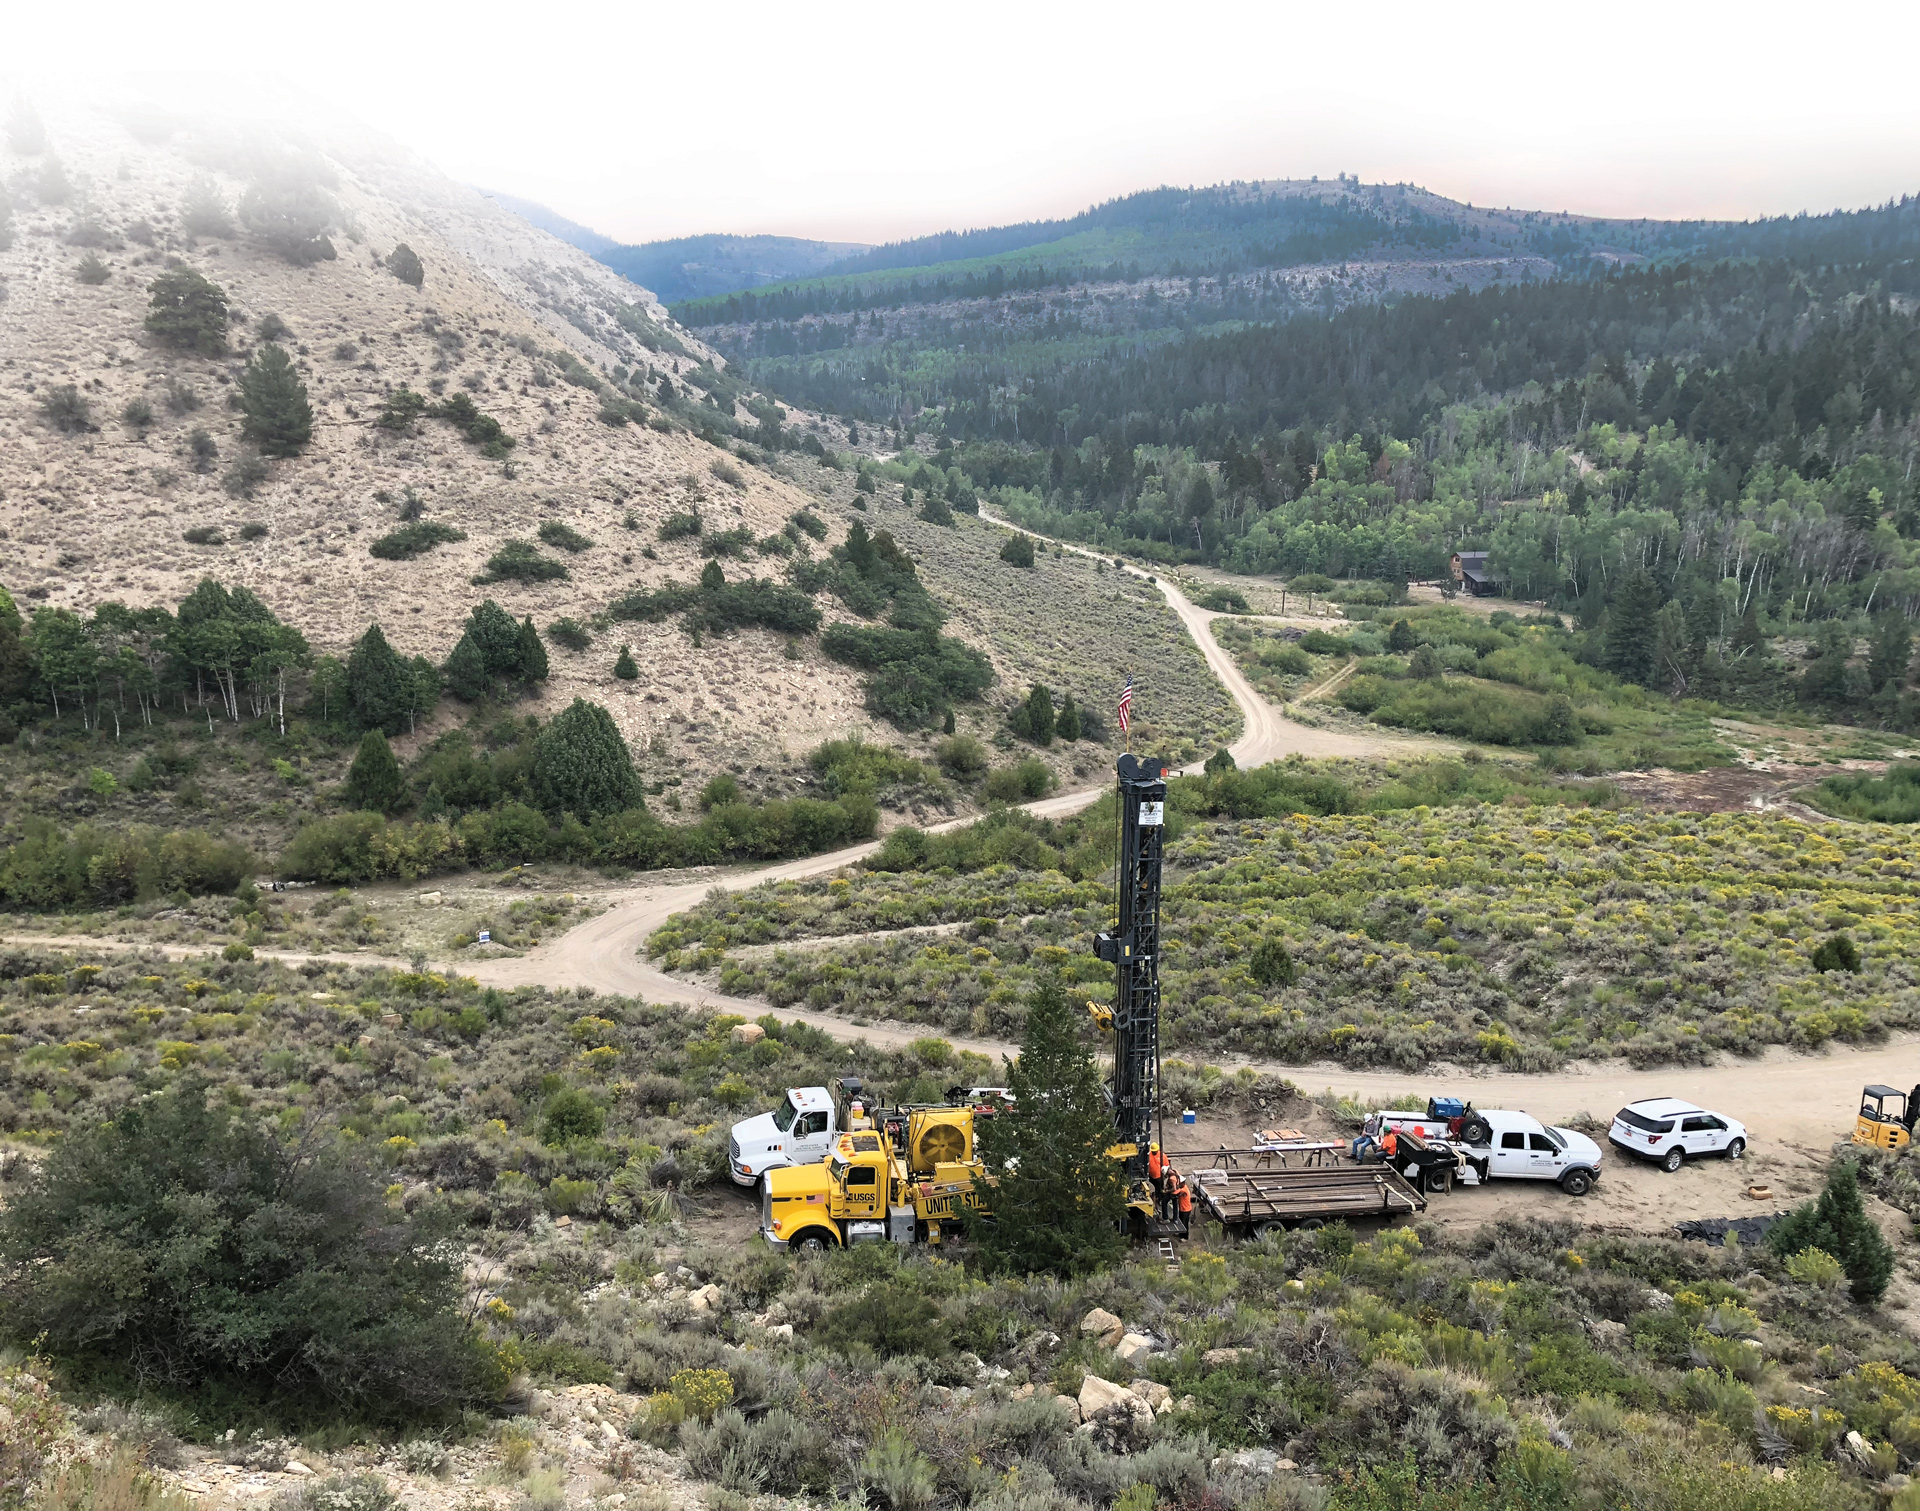 Willow Creek No. 1 field site (view to the east) with wireline coring rig in Willow Creek Canyon.